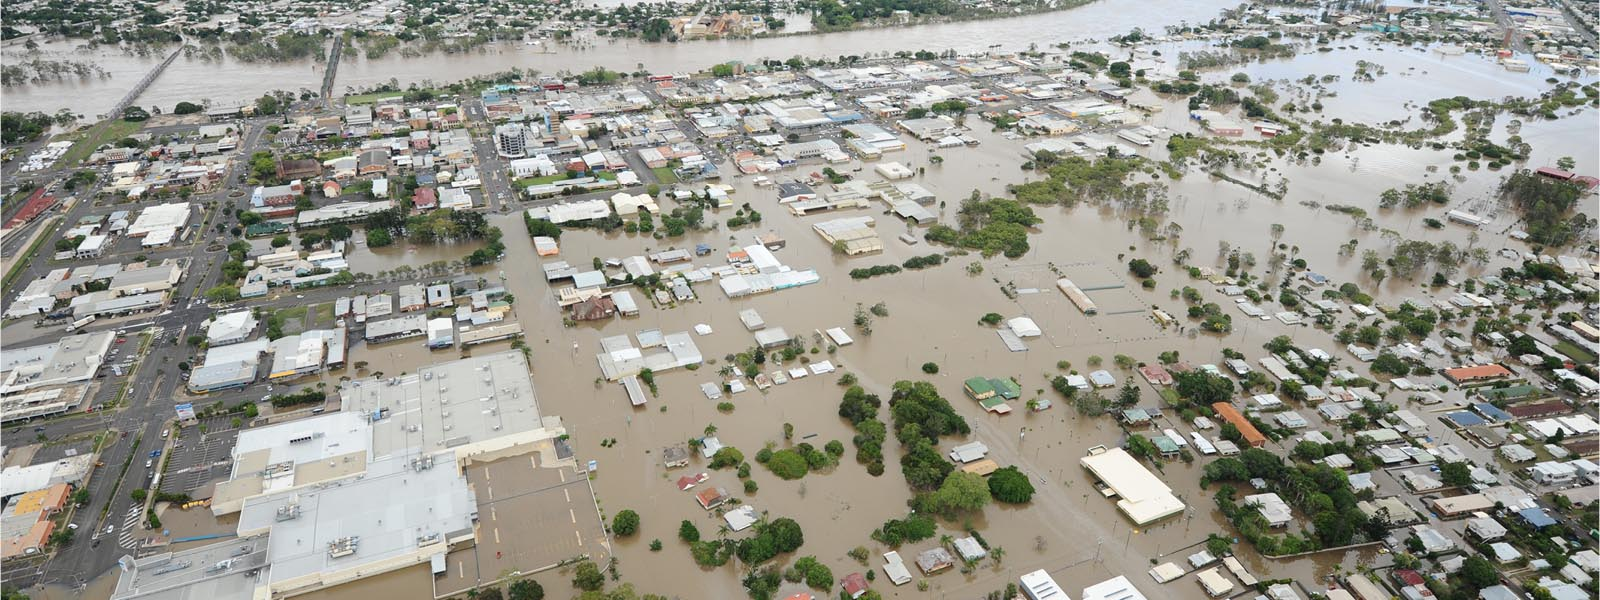 Aerial view of bundaberg under flood water web